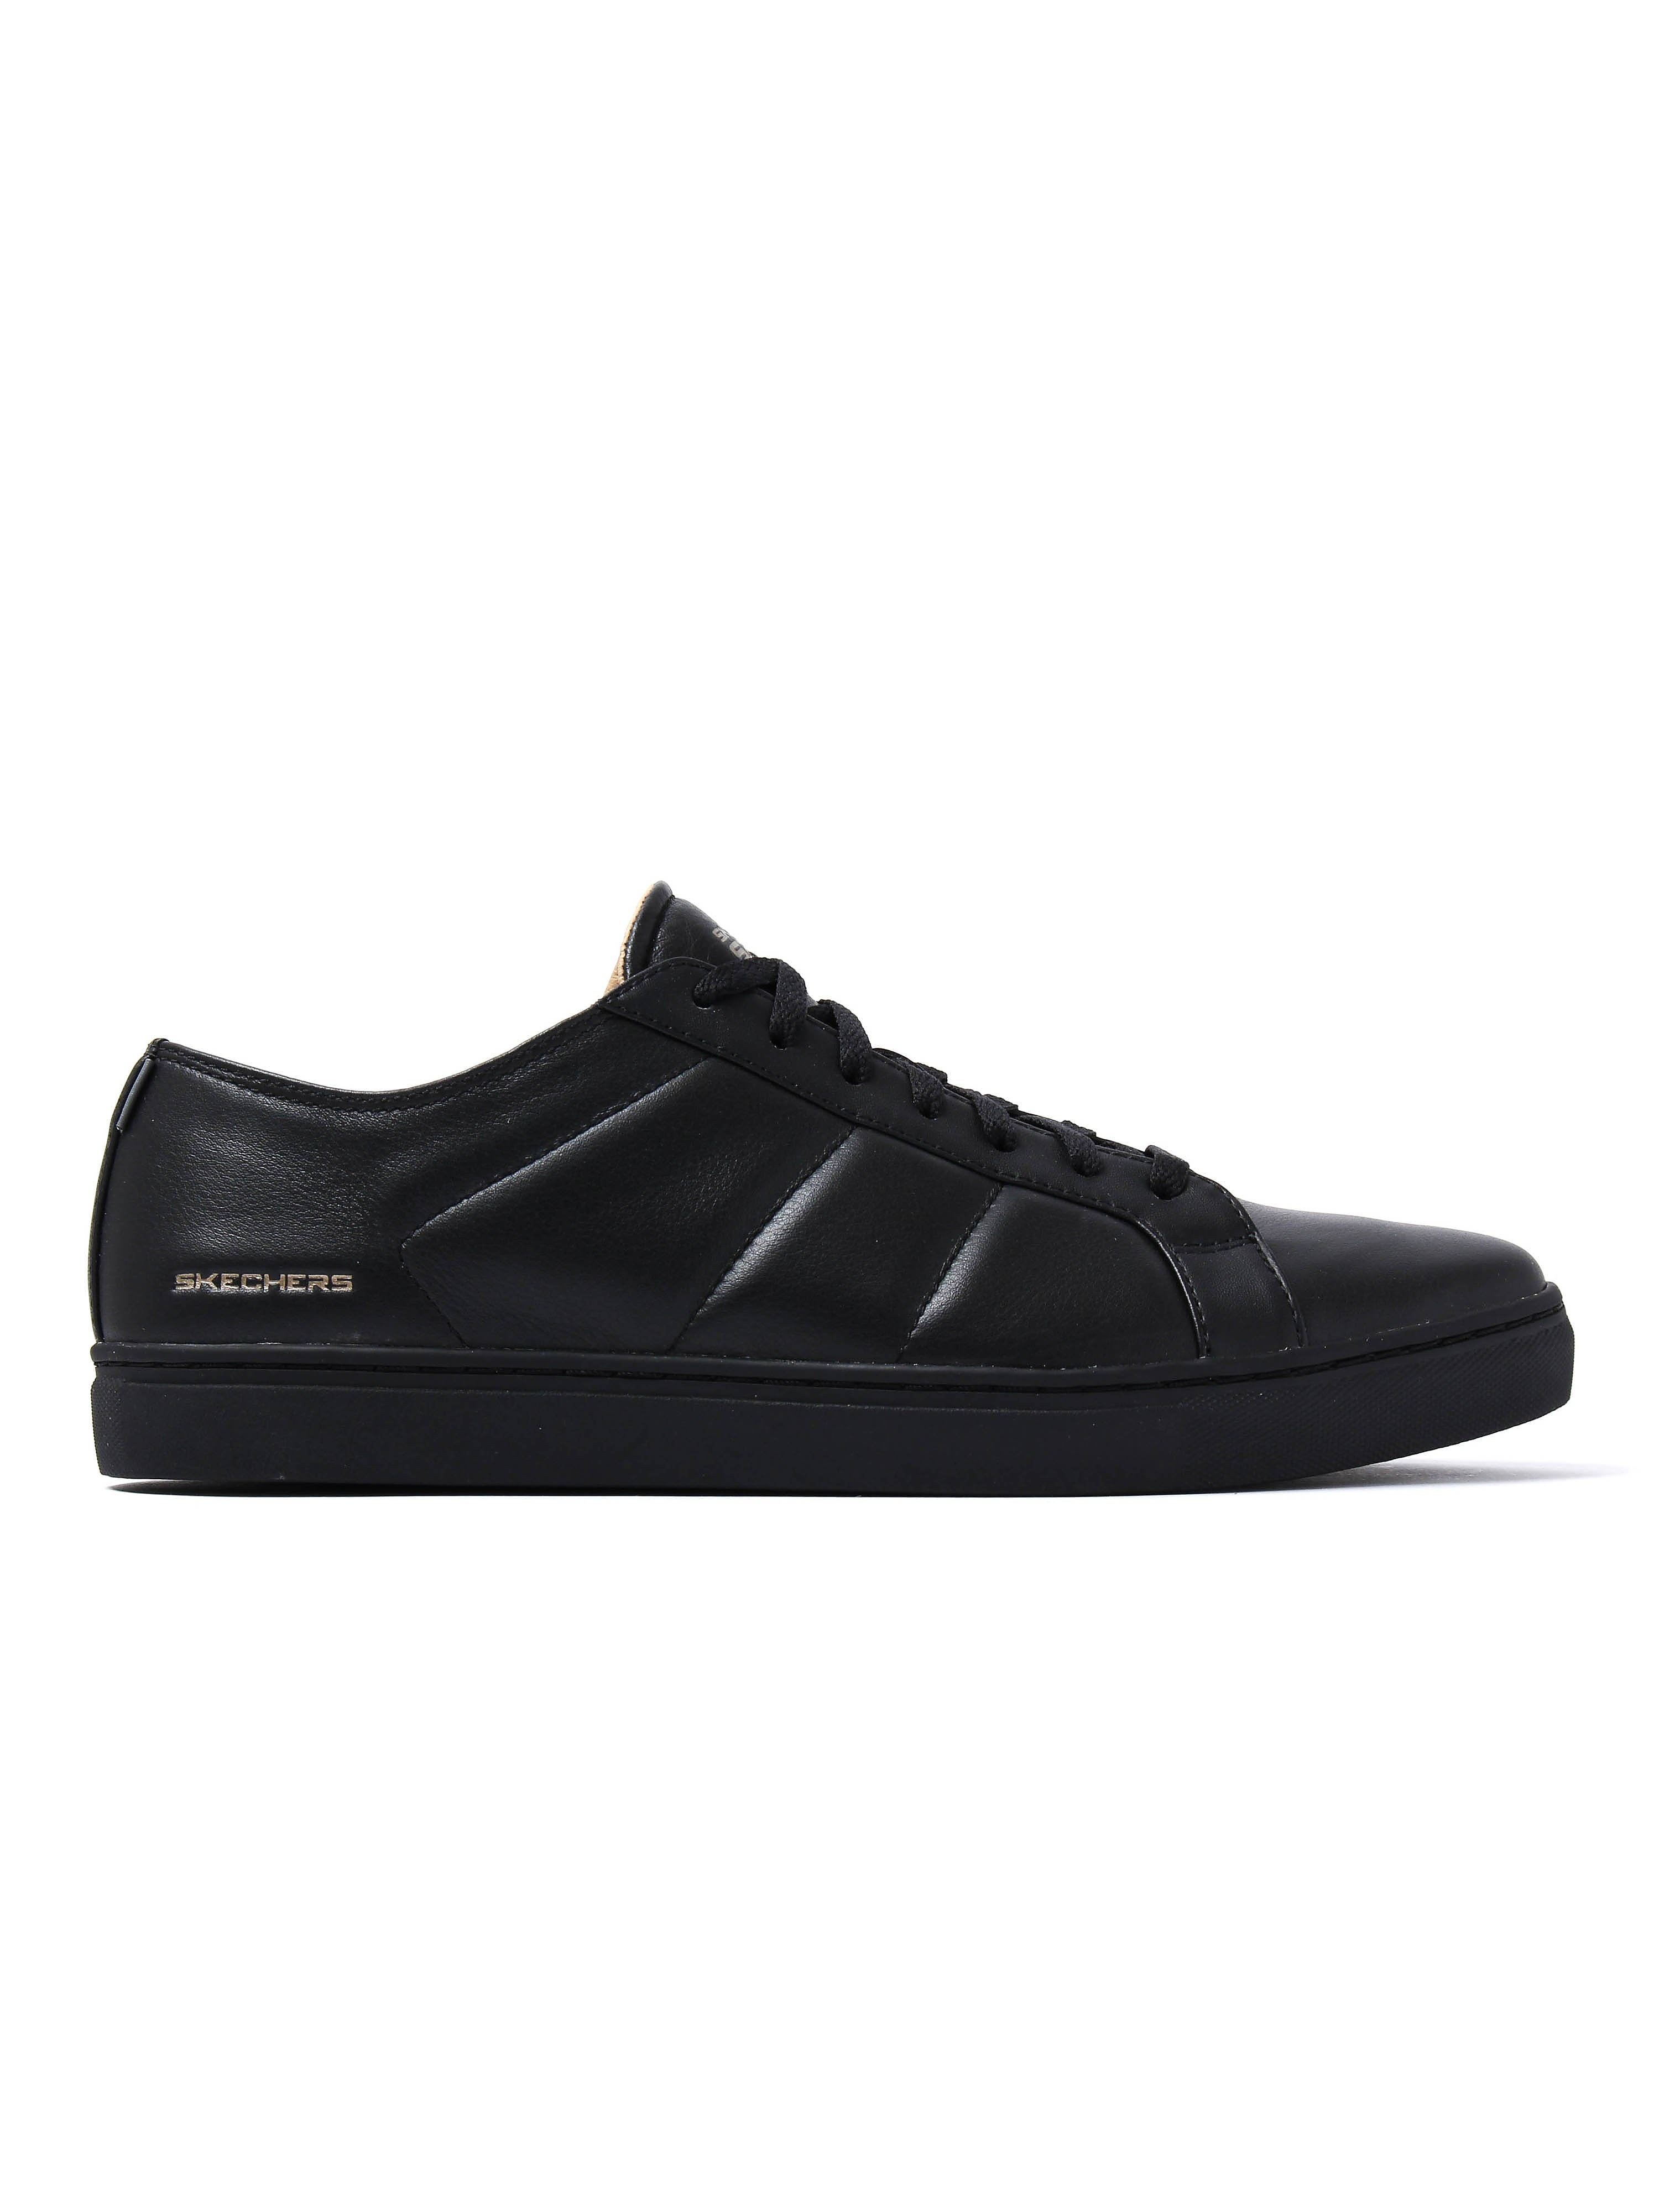 Skechers Men's Venice T Trainers - Black Leather